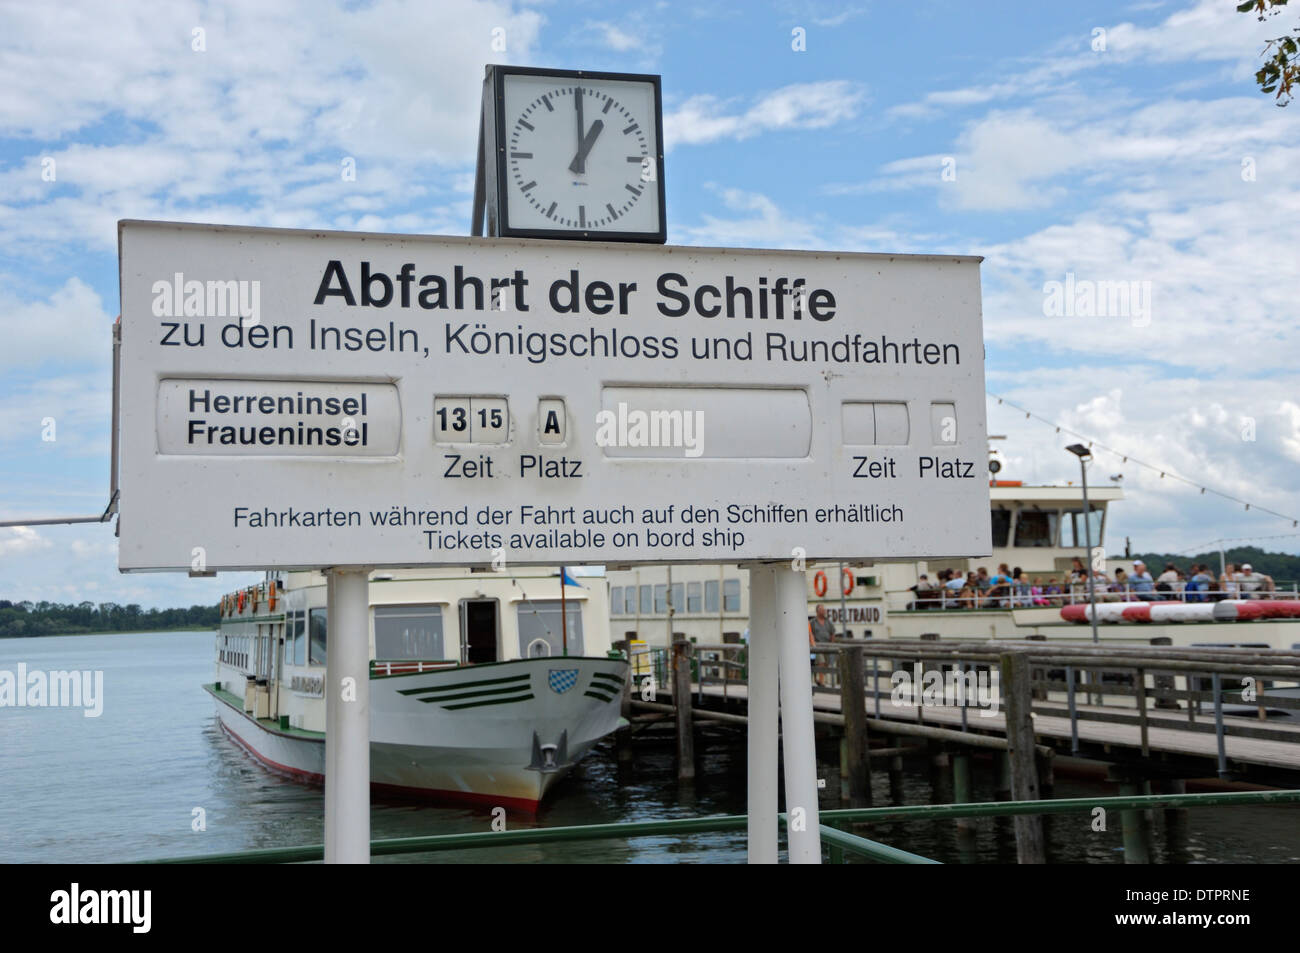 Harbour of Prien, Chiemsee, Bavaria, Germany Stock Photo